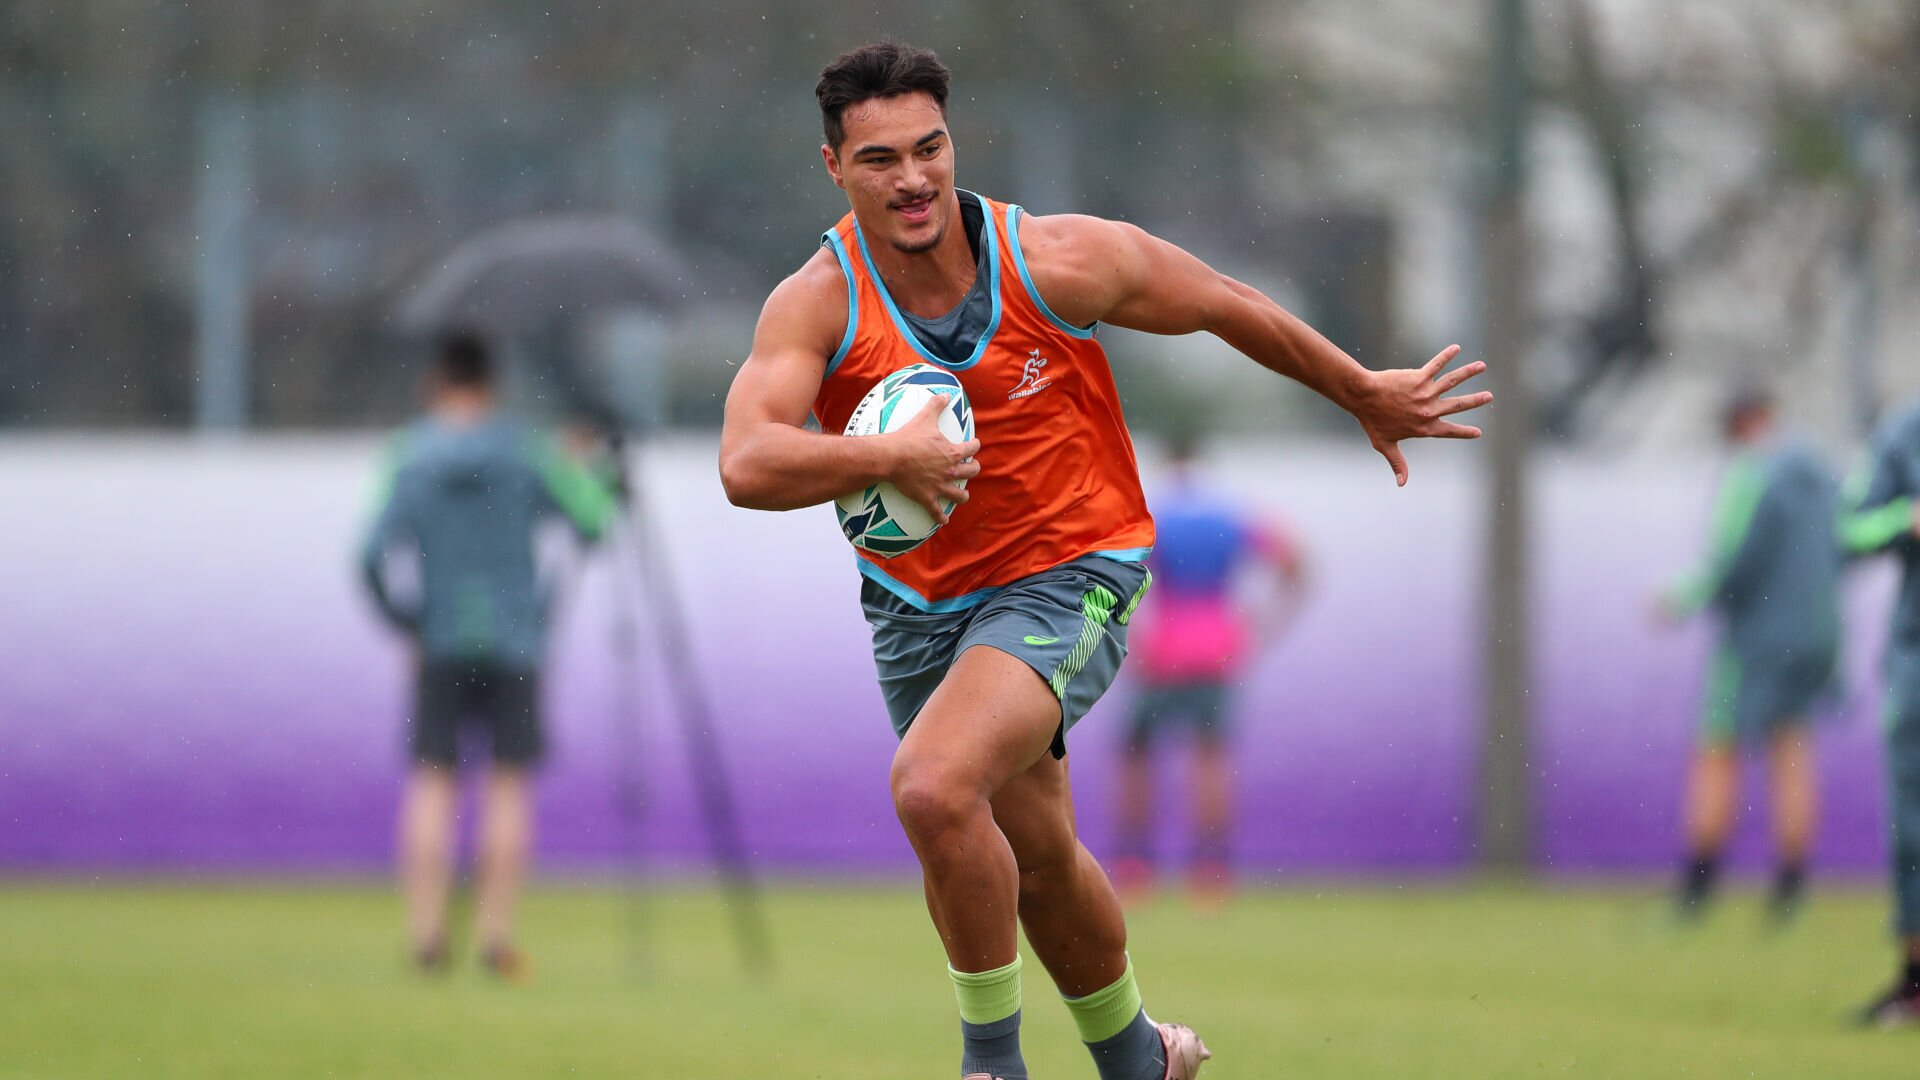 The top 50 U20 rugby players in the world